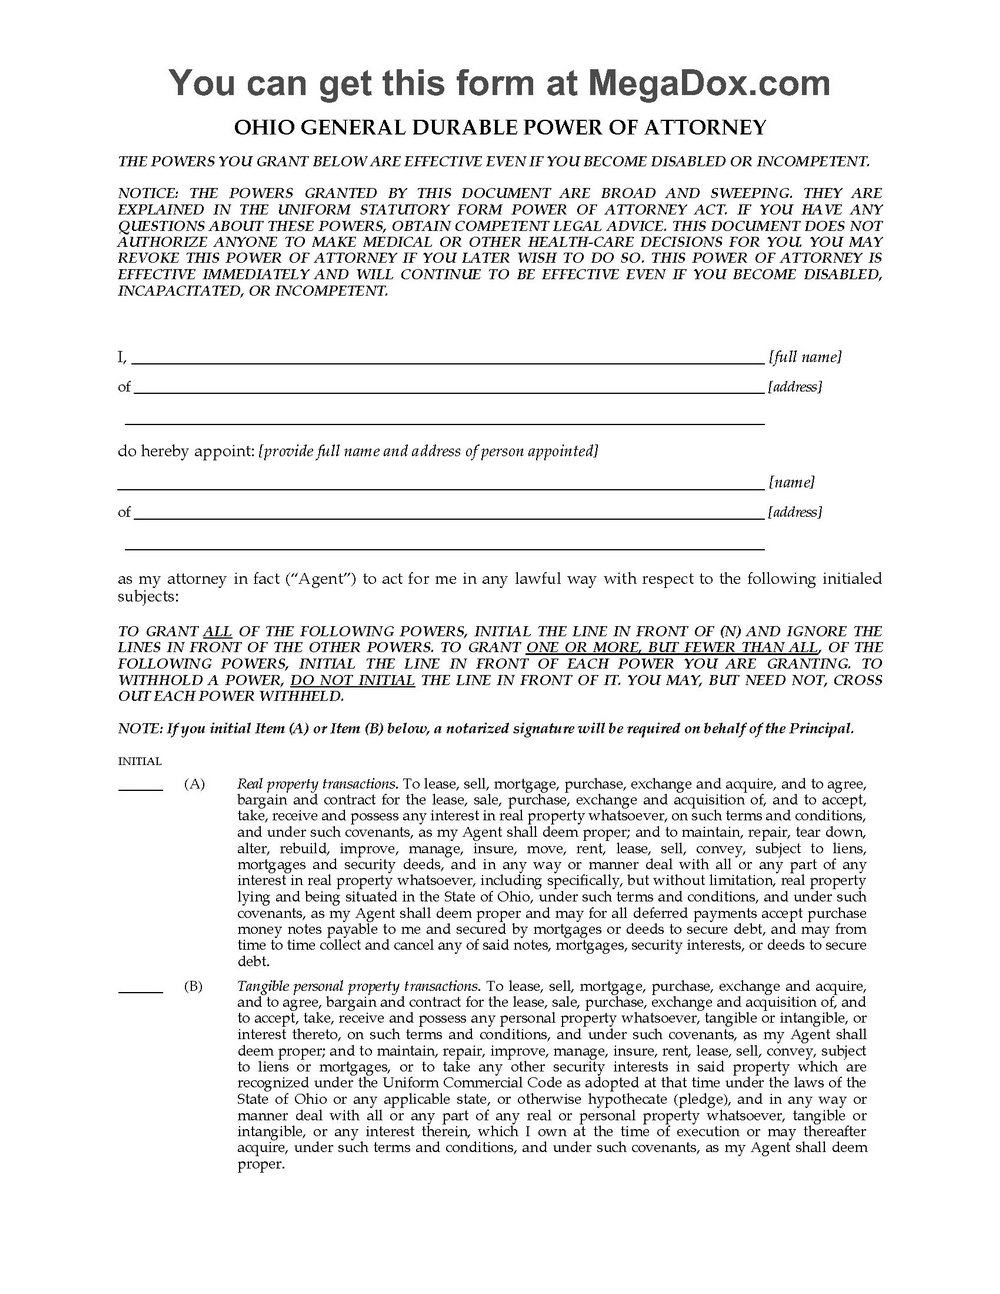 Durable Power Of Attorney Form Florida